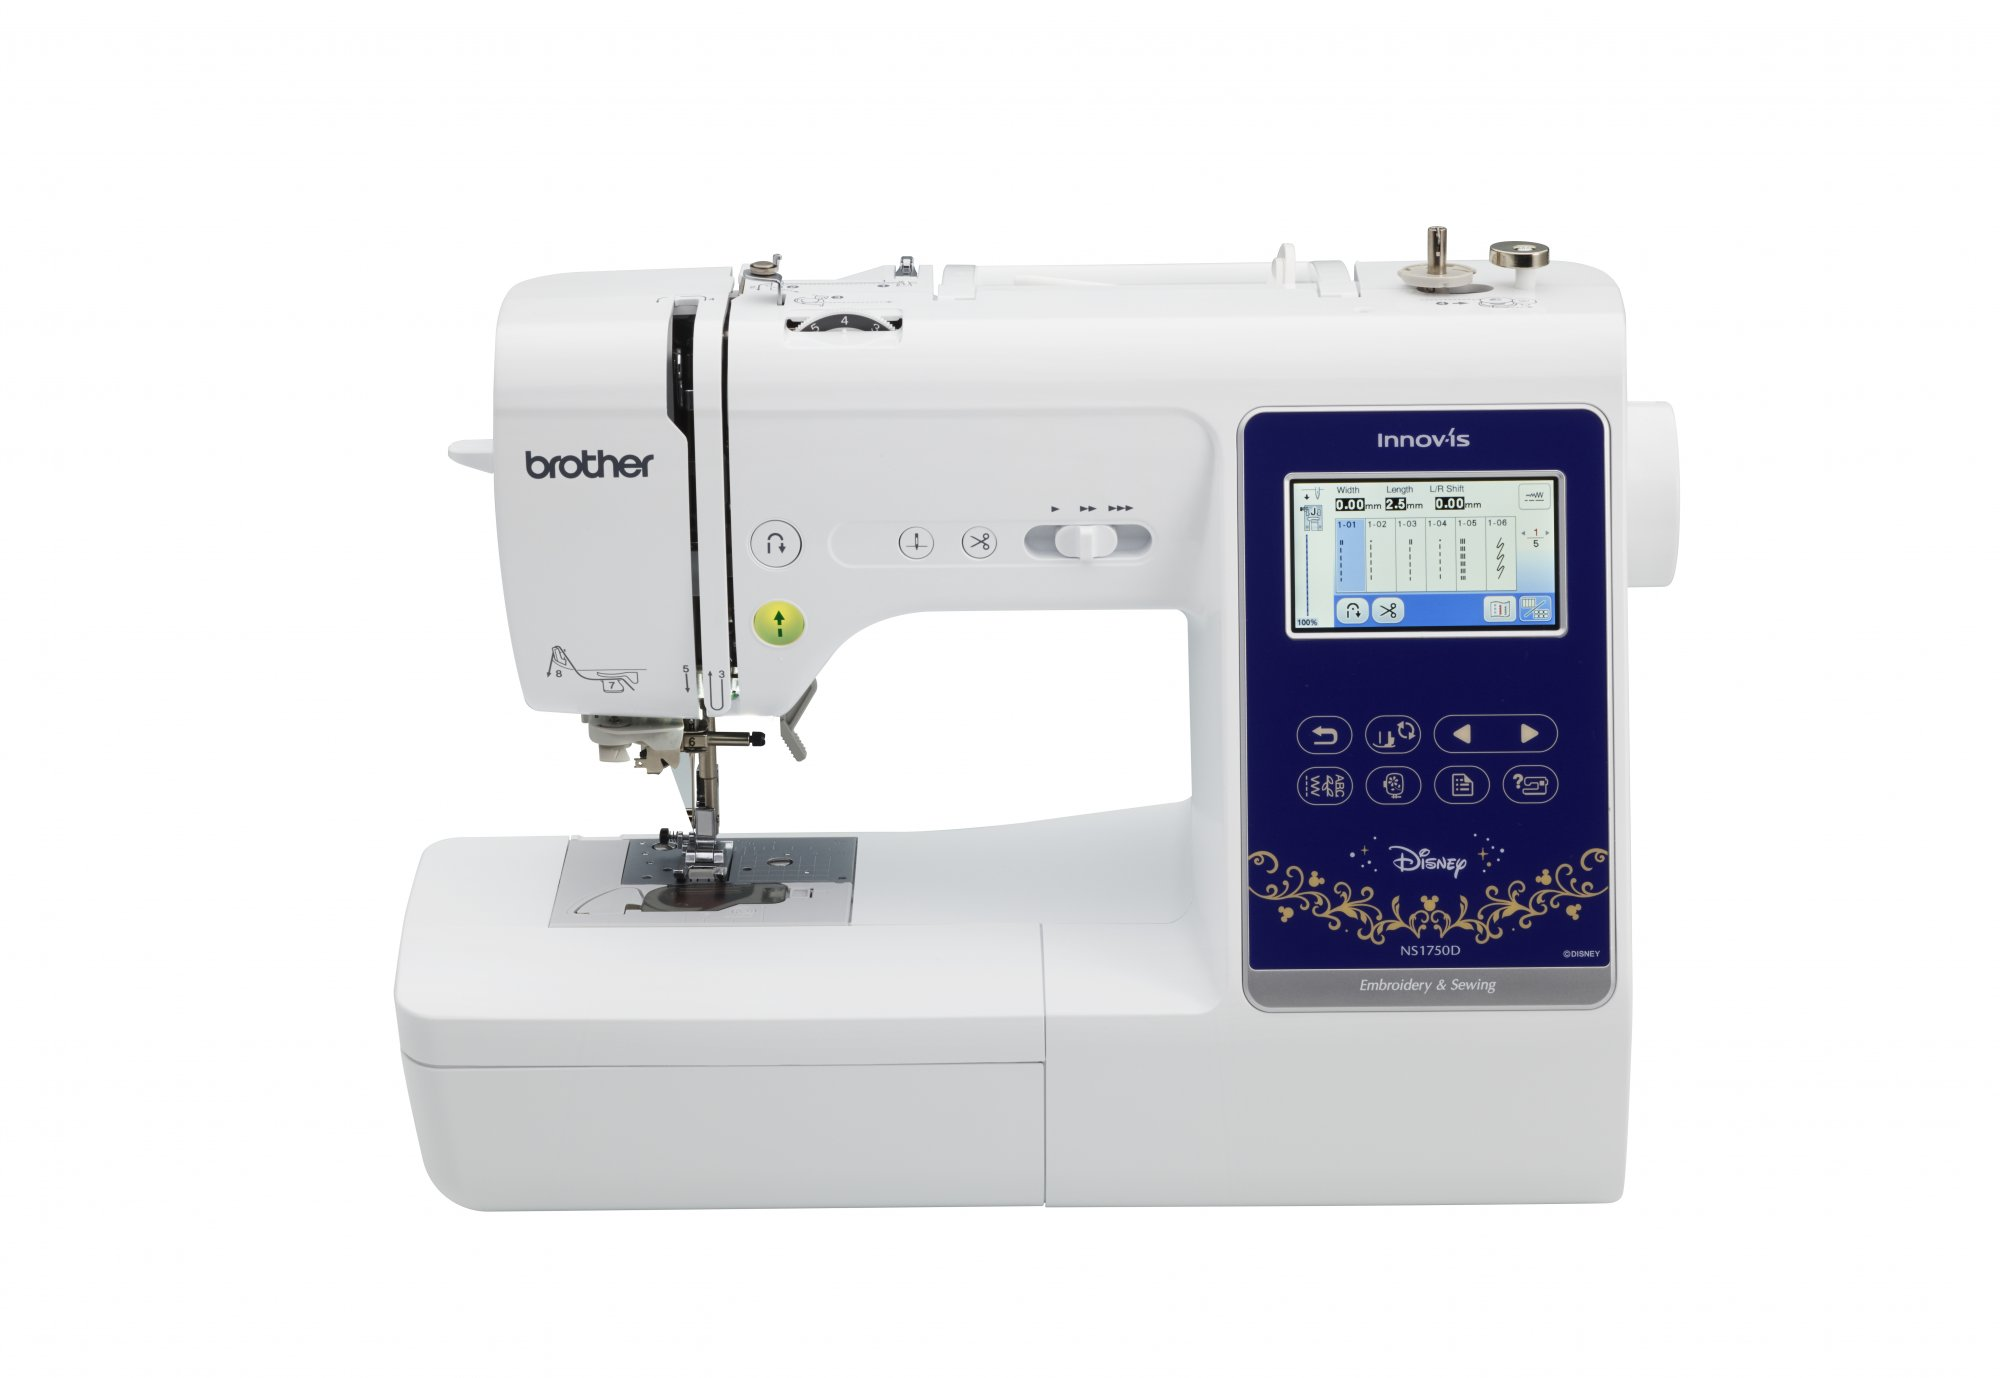 Brother Innovis NS1750D